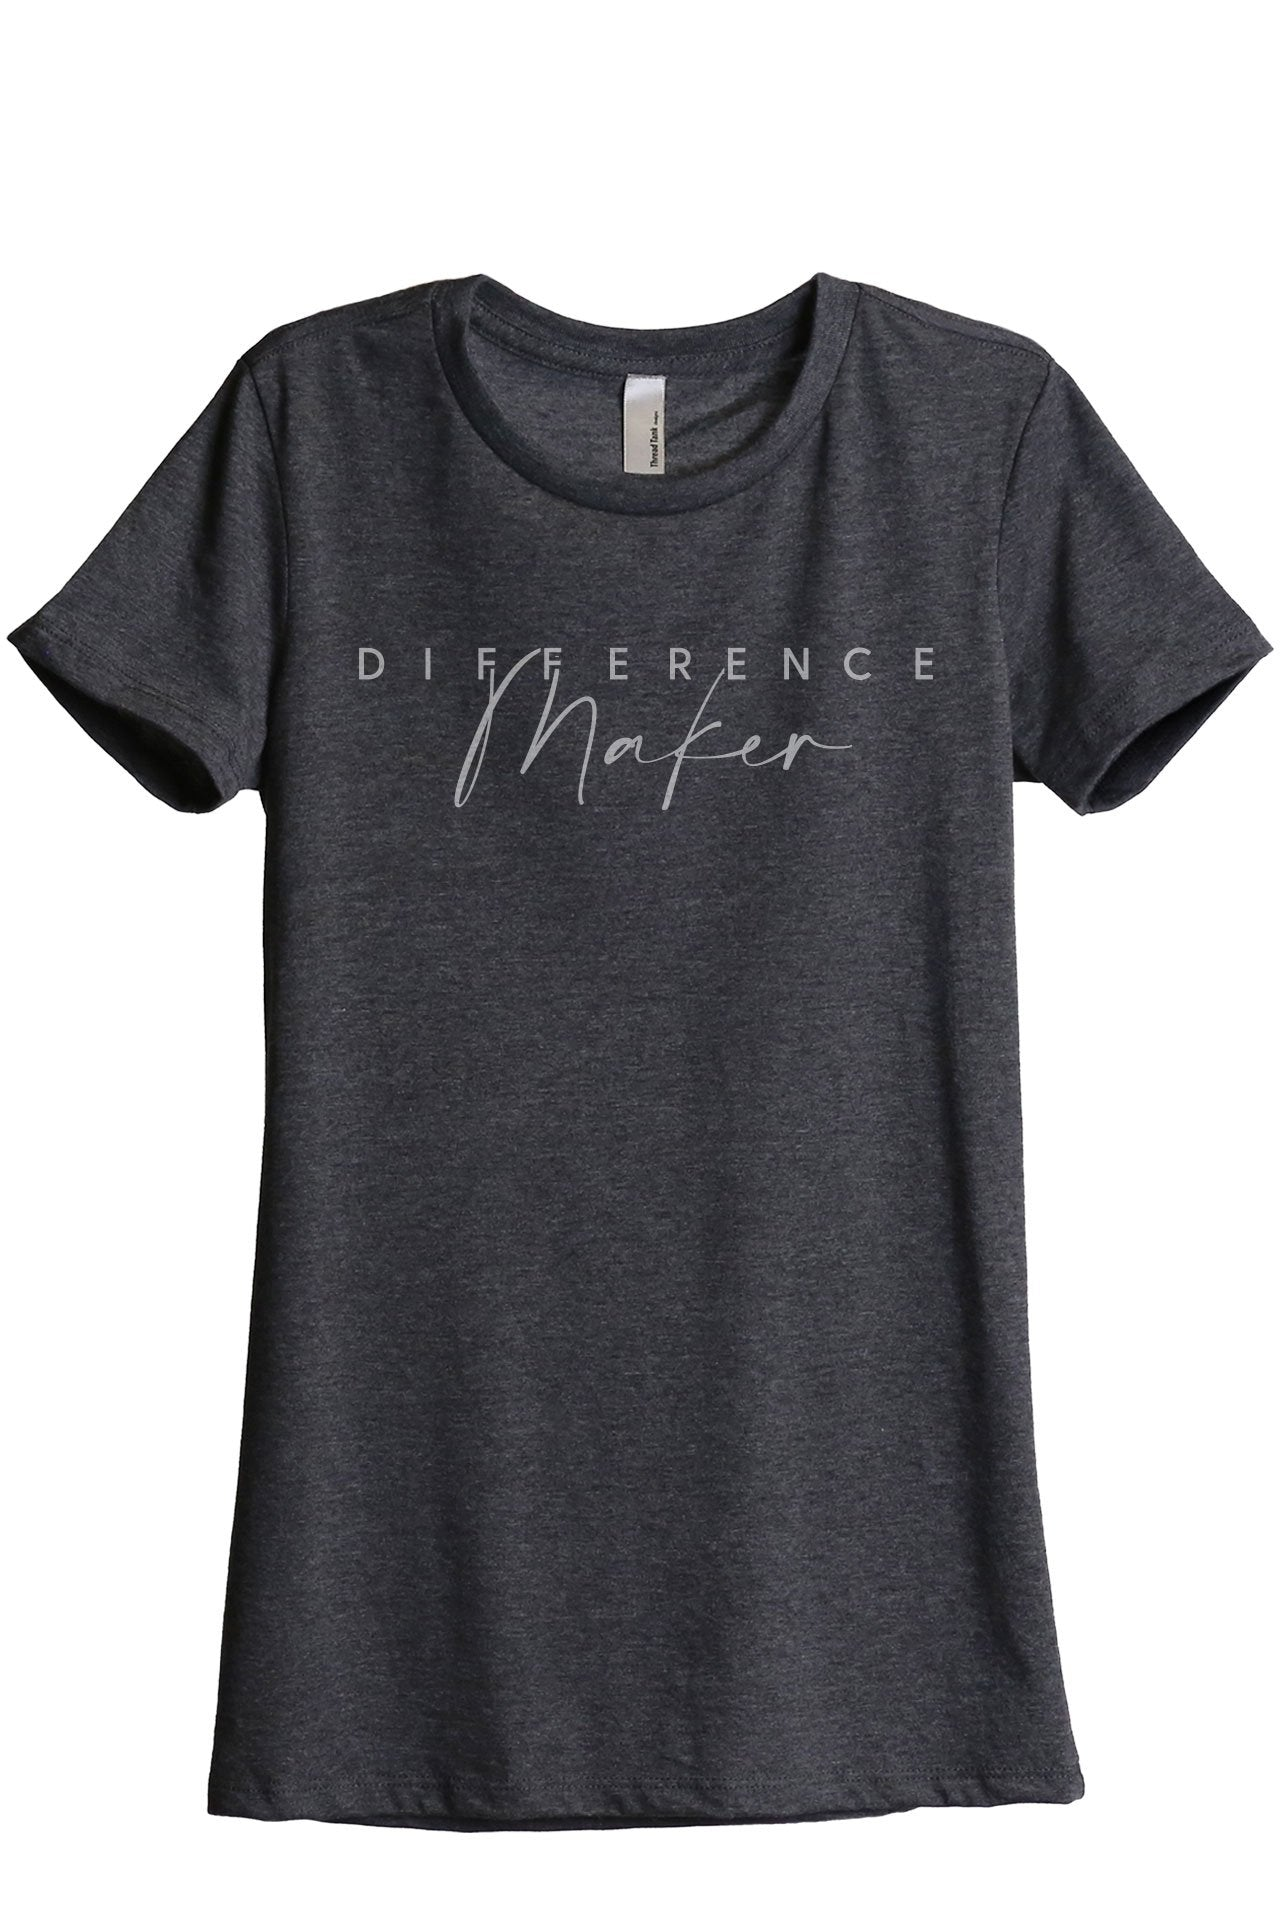 Difference Maker Women's Relaxed Crewneck T-Shirt Top Tee Charcoal Grey